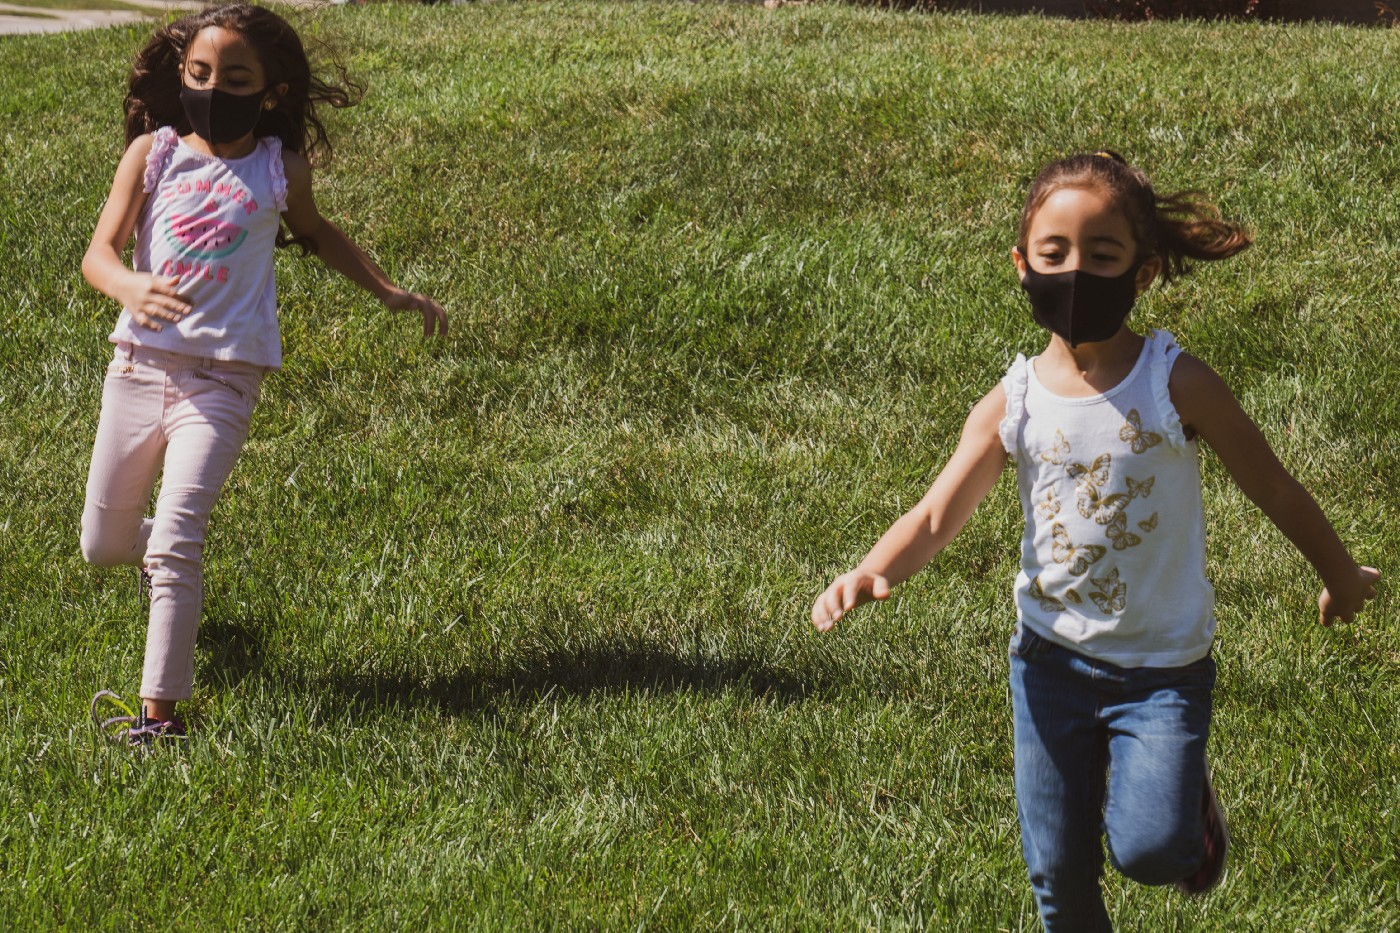 two girls wearing cloth face masks and playing on a green grass field during daytime